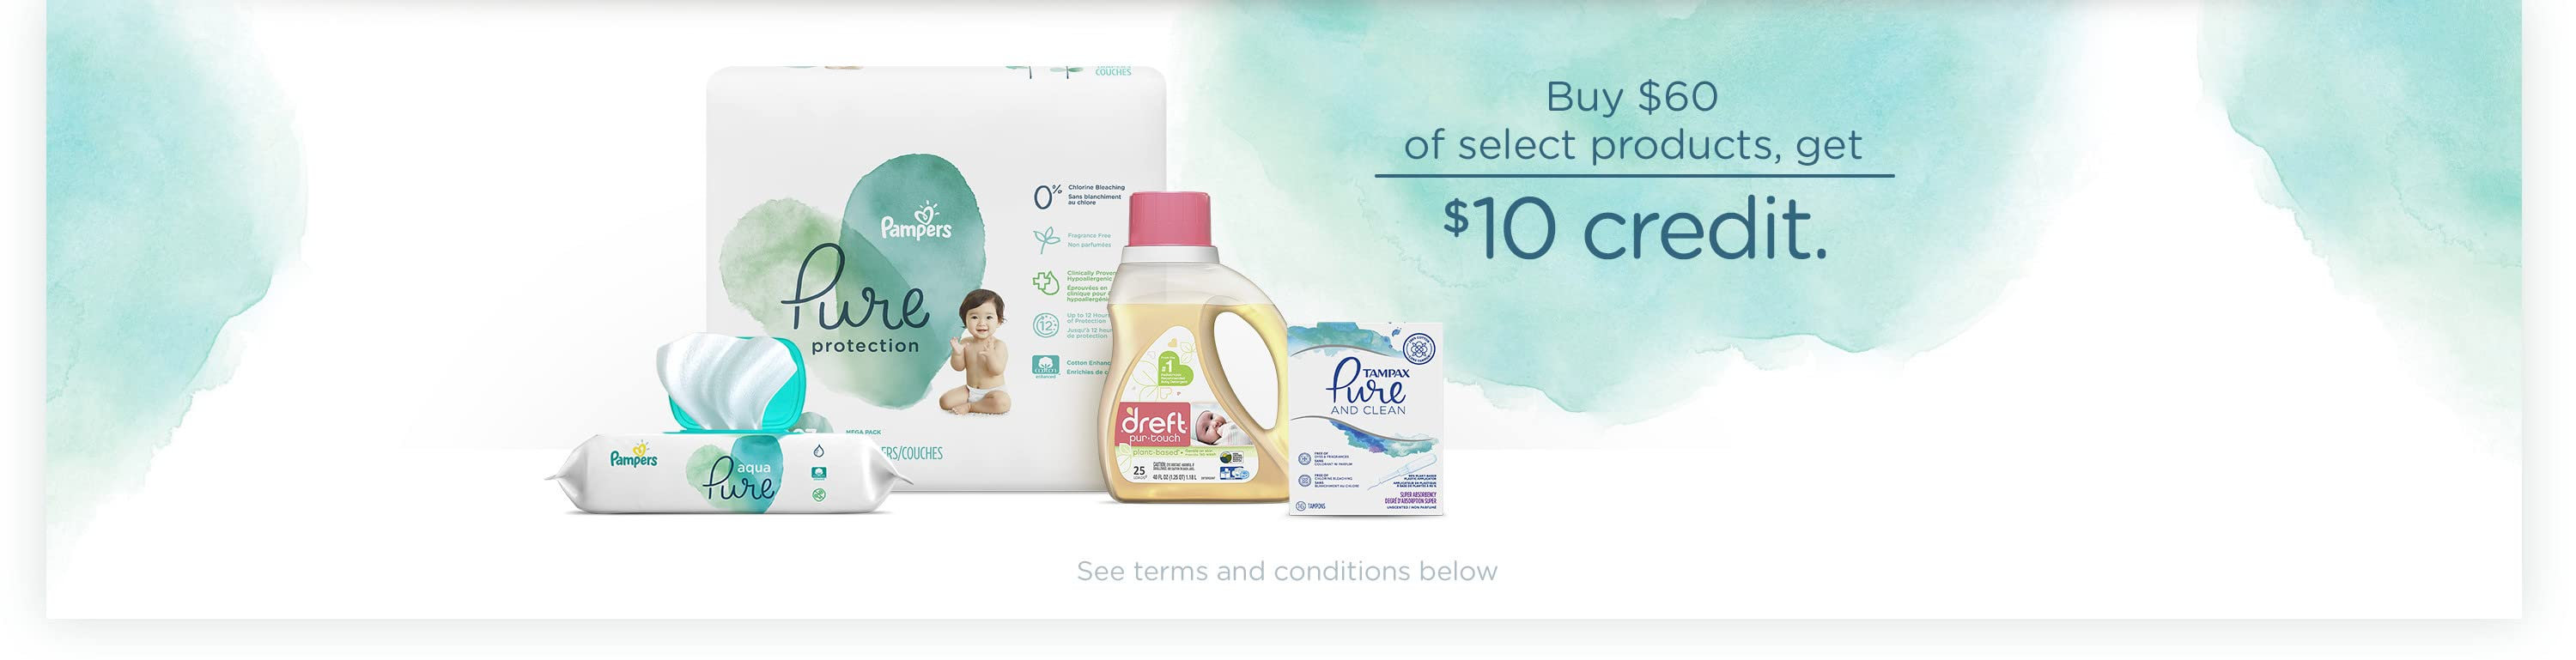 Buy $60 of Select Naturals Products, & Get a $10 Credit